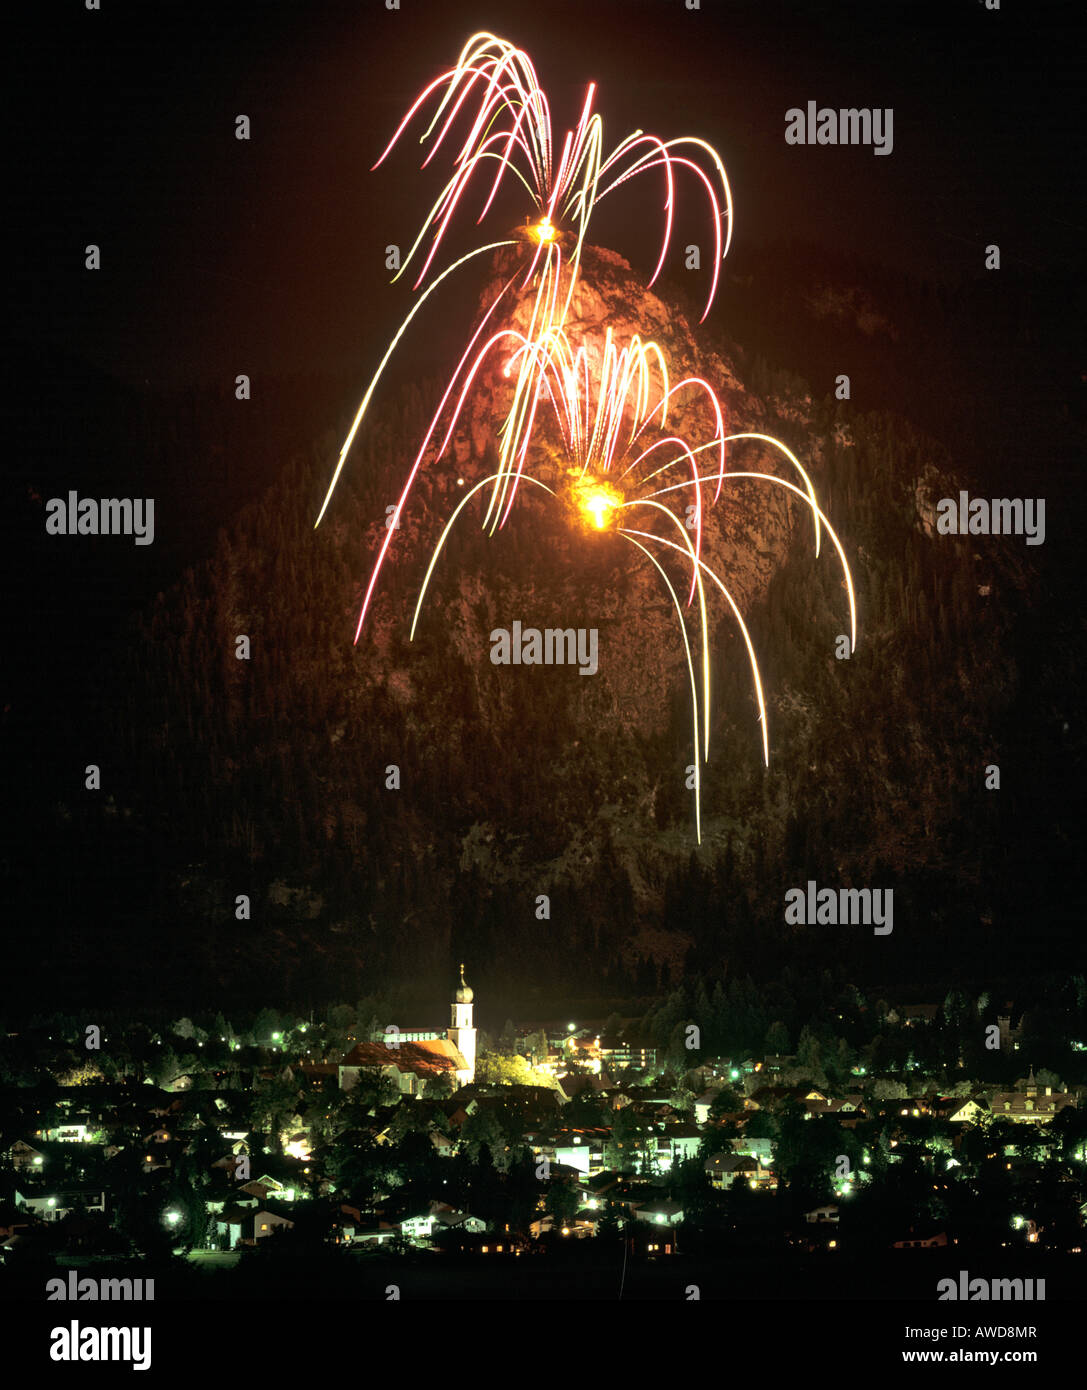 King Ludwig II of Bavaria fireworks at Mt. Kofel, Oberammergau, Upper Bavaria, Bavaria, Germany, Europe - Stock Image